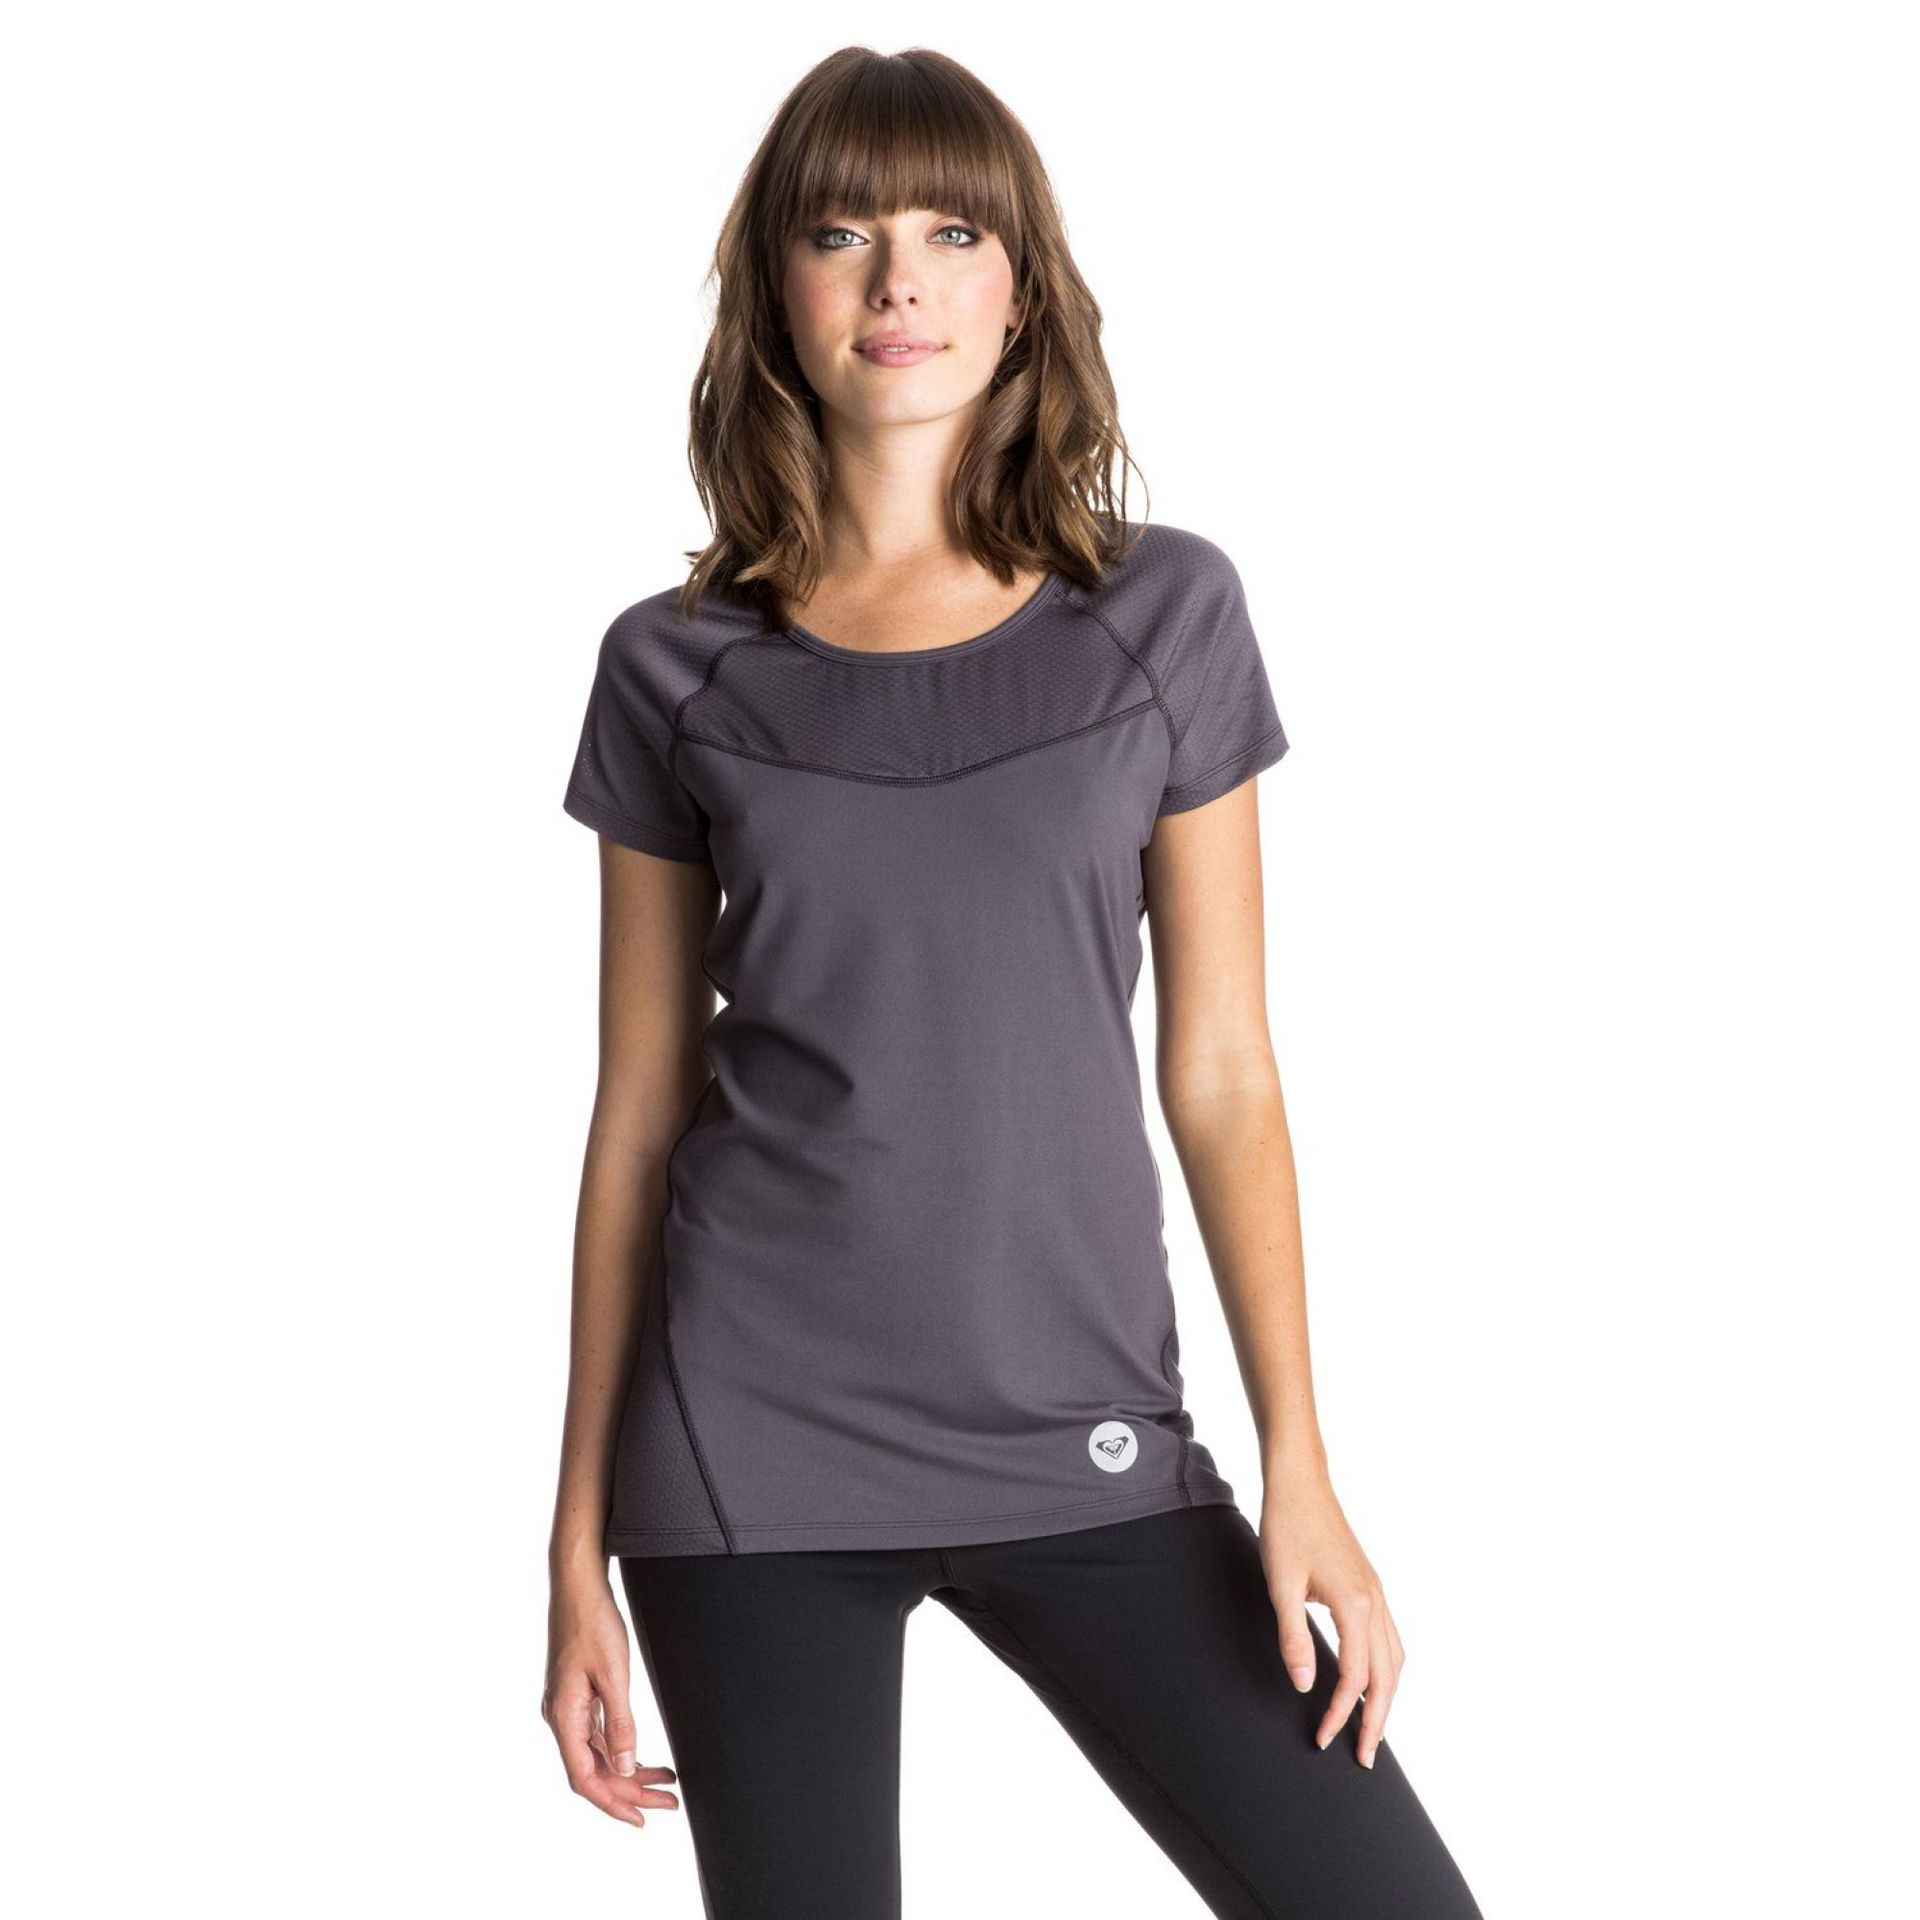 KOSZULKA ROXY TOP TIER T-SHIRT KRY0